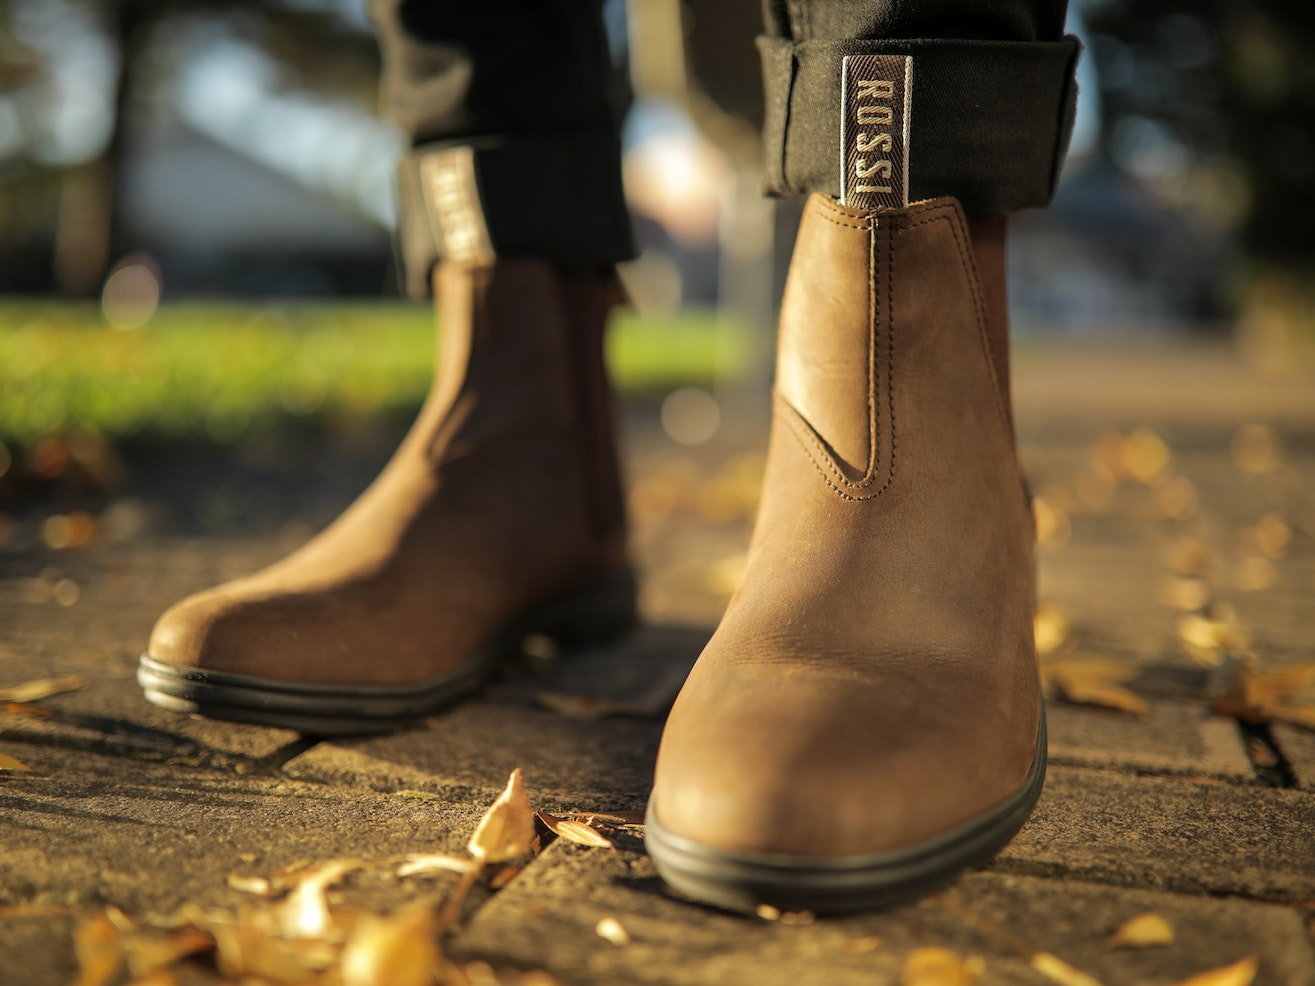 d6e48f9ee Home | Rossi Boots - Australia | Men's and women's boots built to last